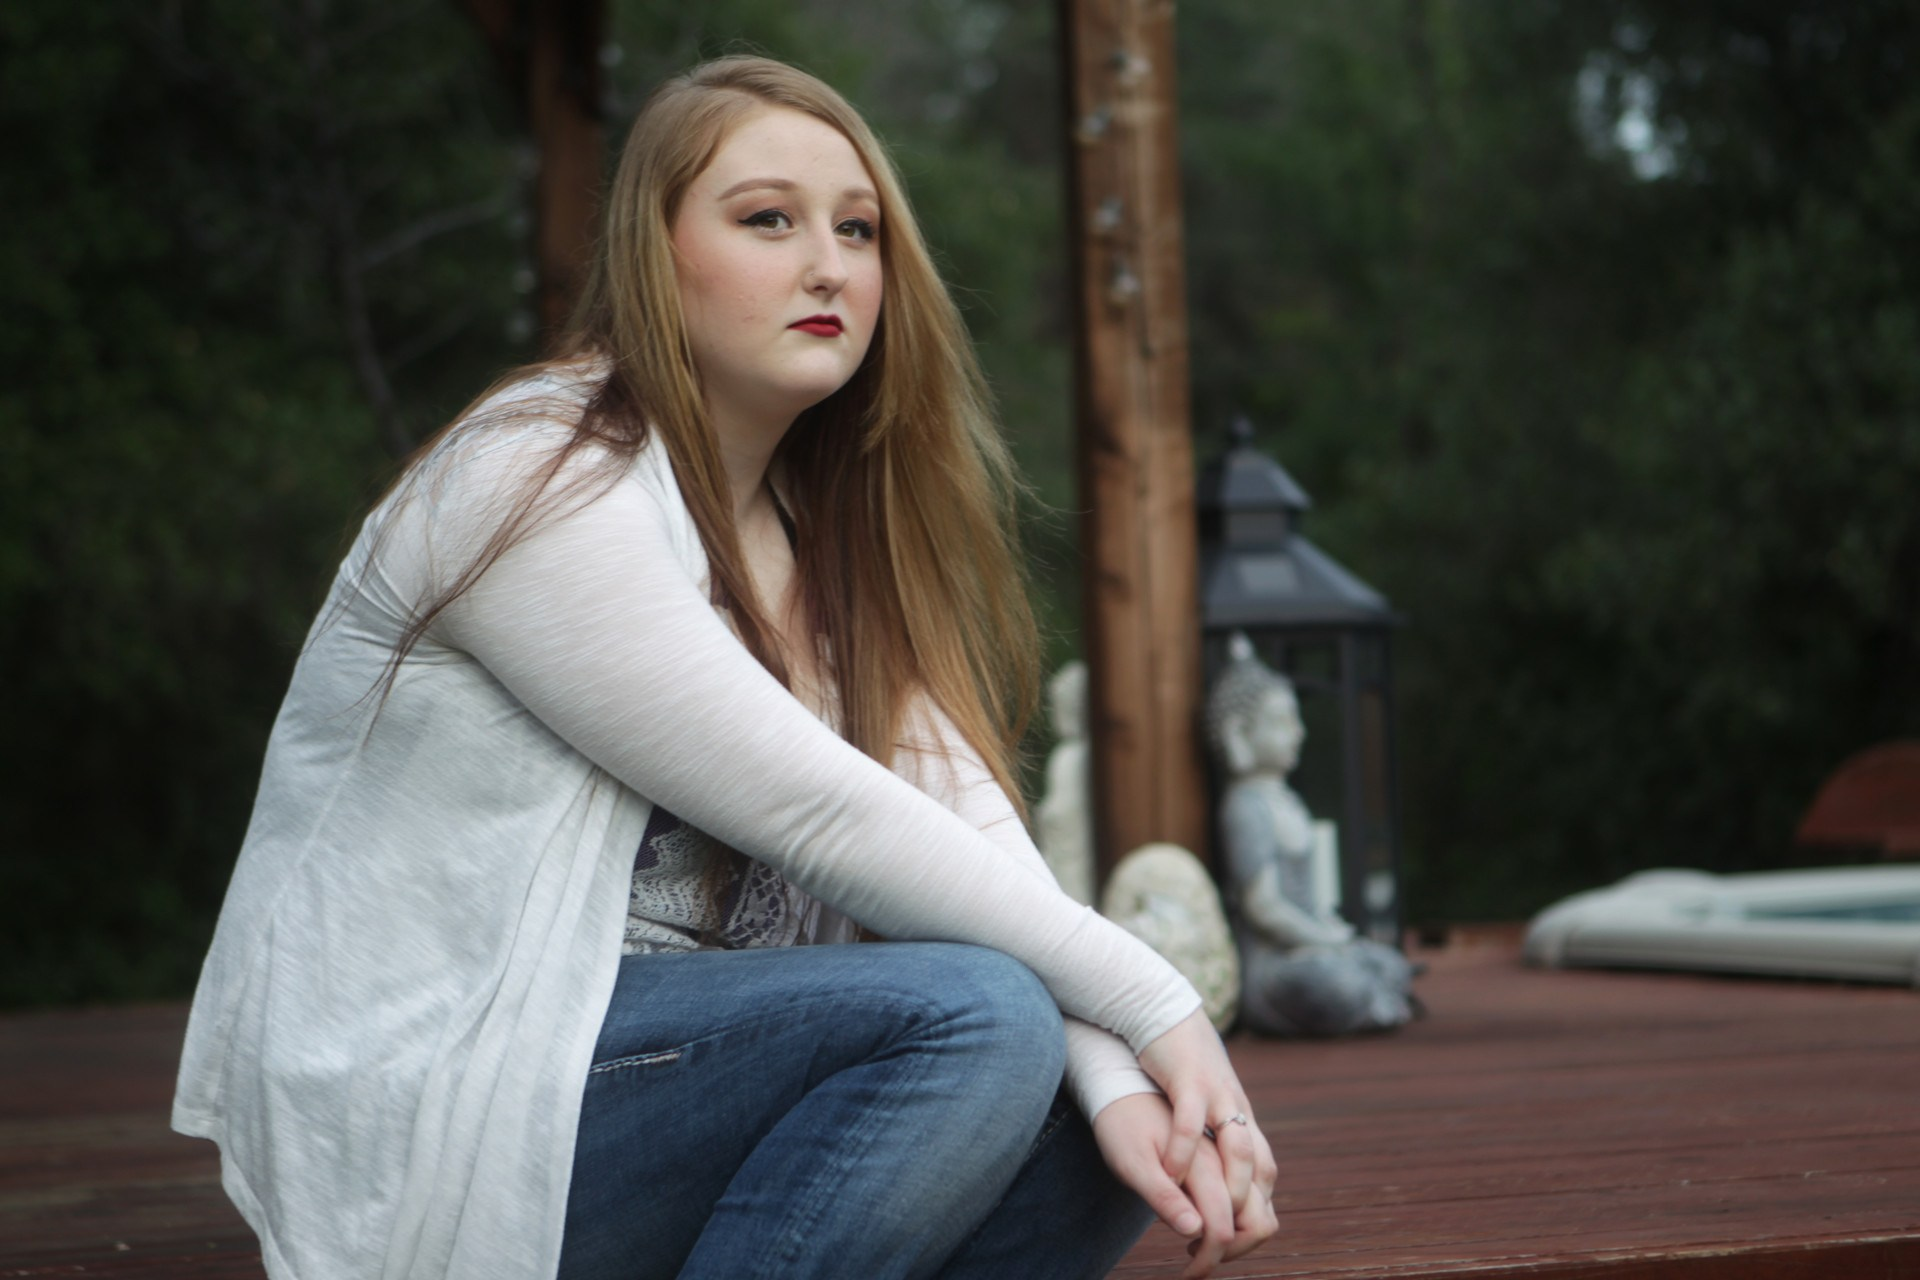 Shariah Vroman-Nagy, 18, attempted suicide three years ago.